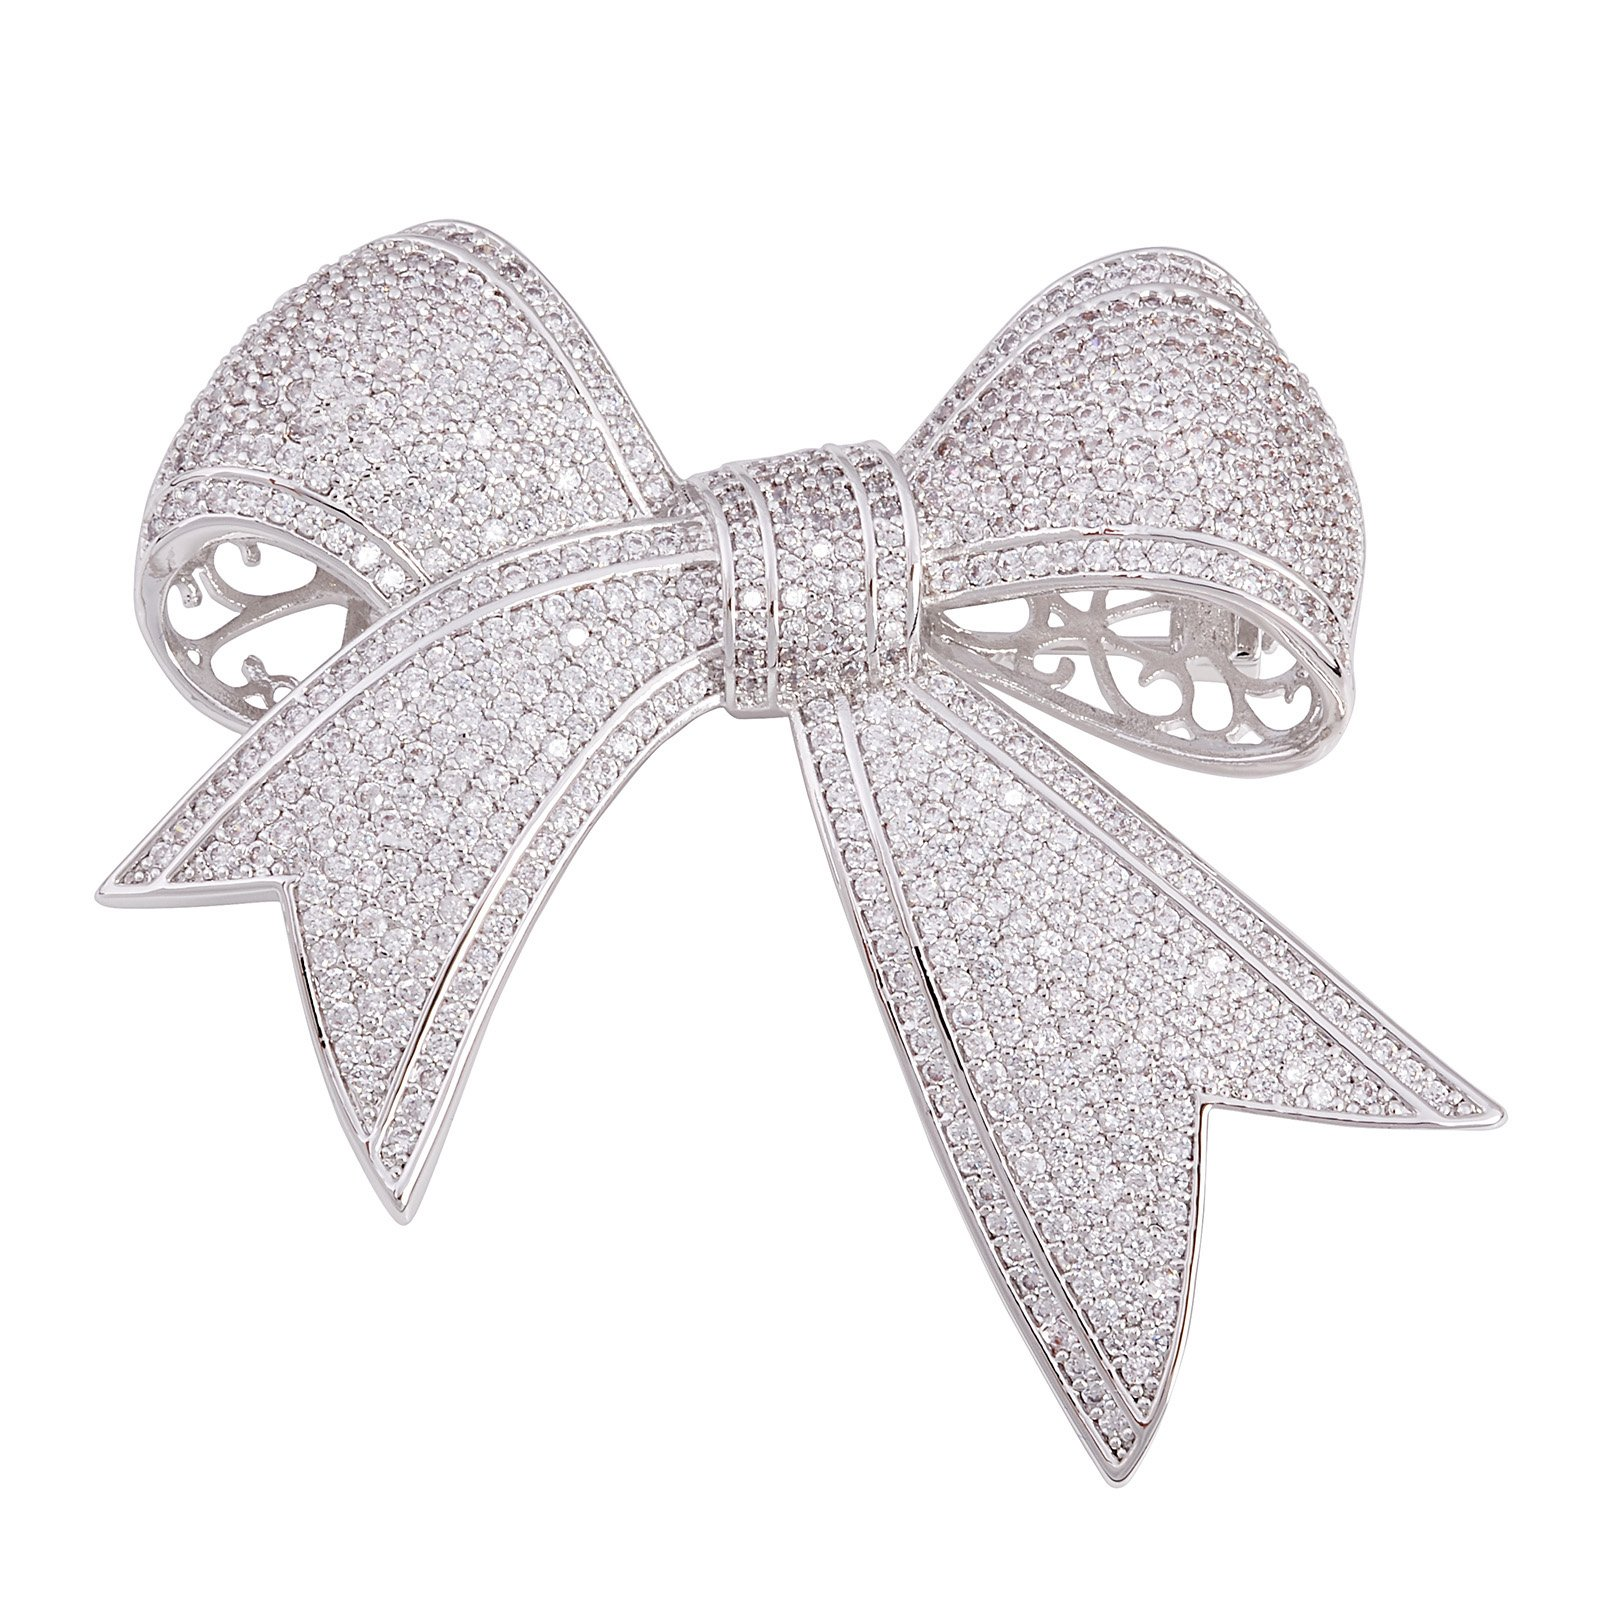 OBONNIE Elegant Silver Tone Micro Pave Cubic Zirconia Love Knot Bow Wedding Bride Mother Brooch Pin